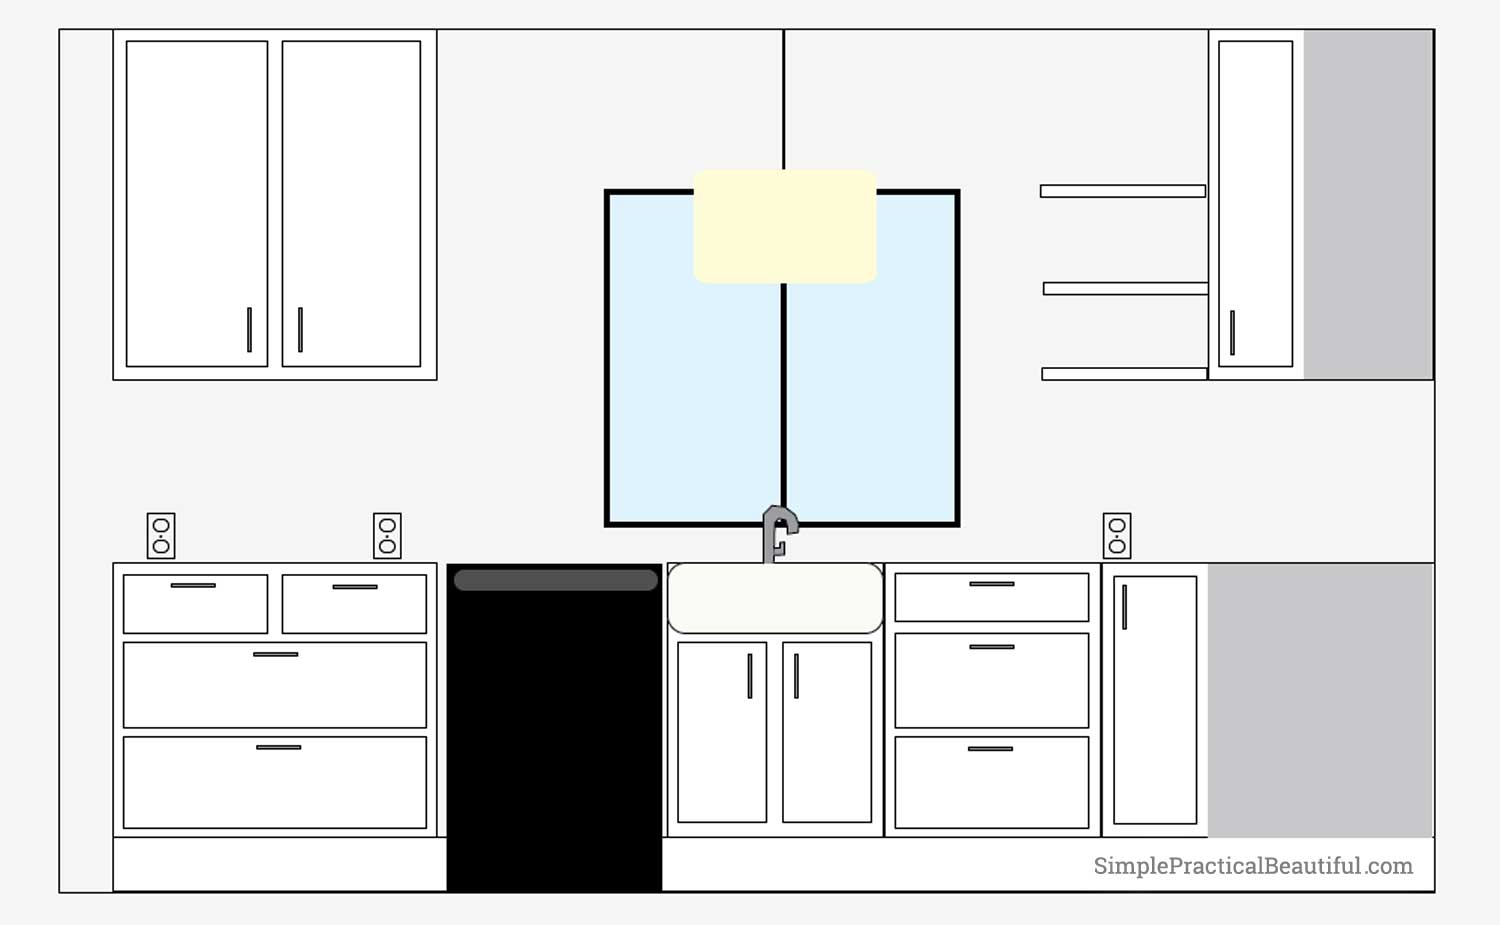 High Quality Use Adobe Illustrator To Create An Accurate And Scaled Layout Of Any Room |  Especially Great